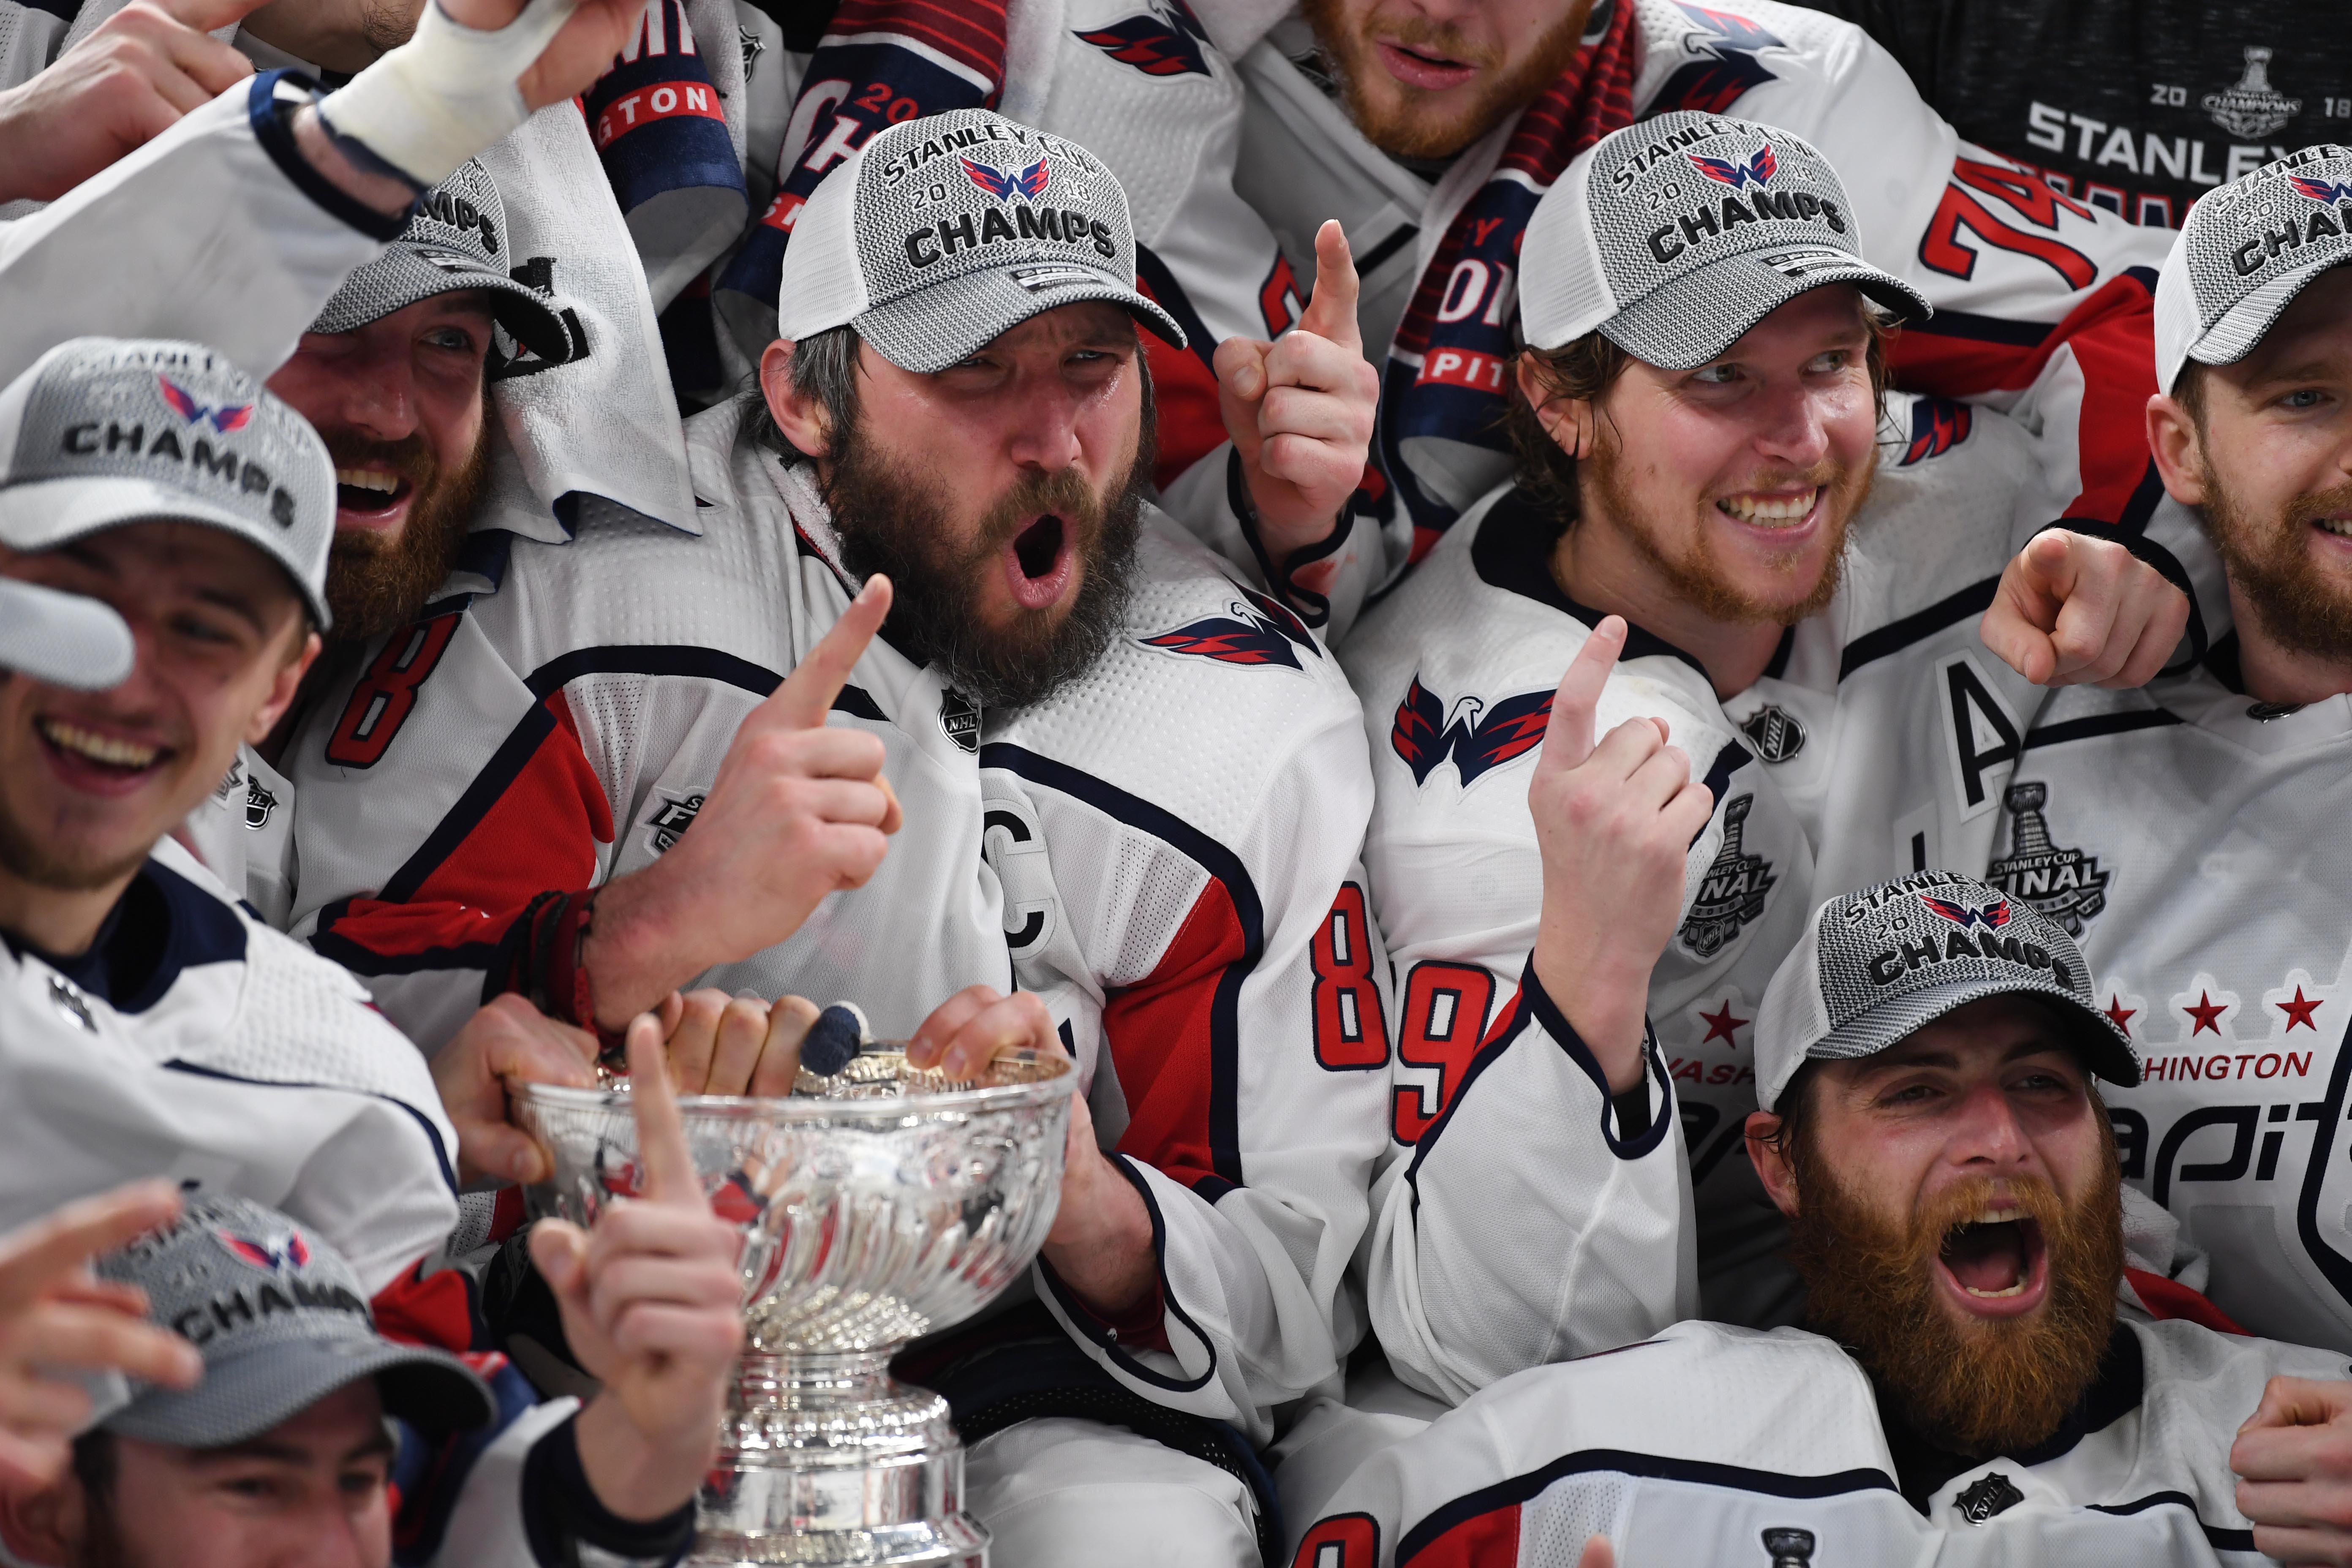 Twitter reacts to Alex Ovechkin and the Washington Capitals winning their  first Stanley Cup a943aee30a27